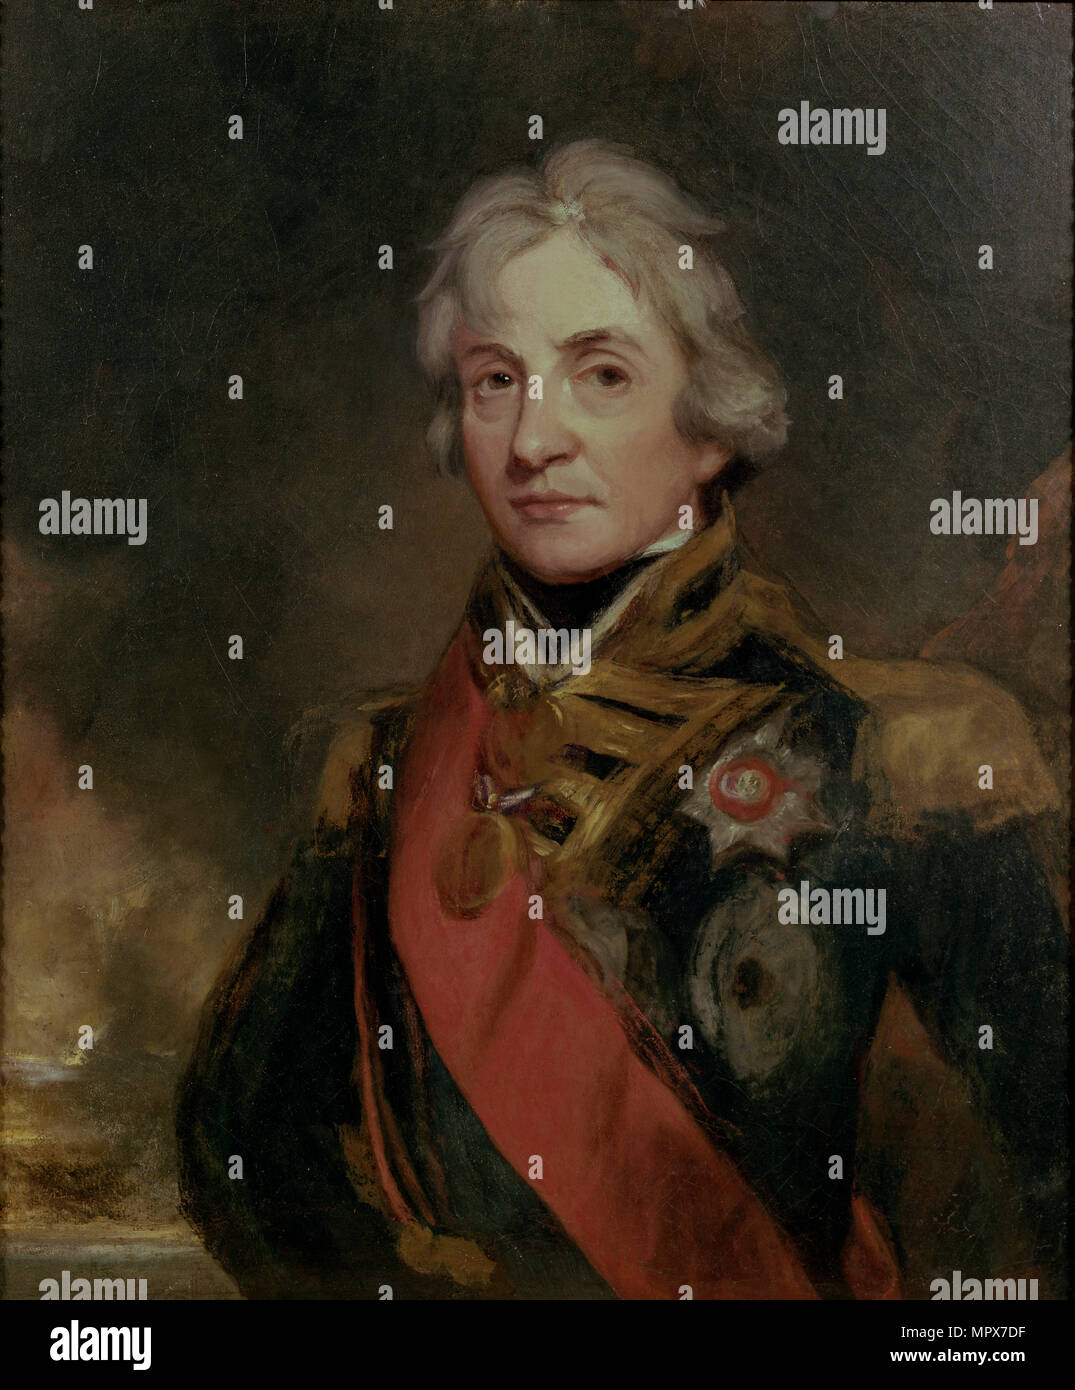 Vice-Admiral Horatio Nelson (1758-1805), 1802. - Stock Image